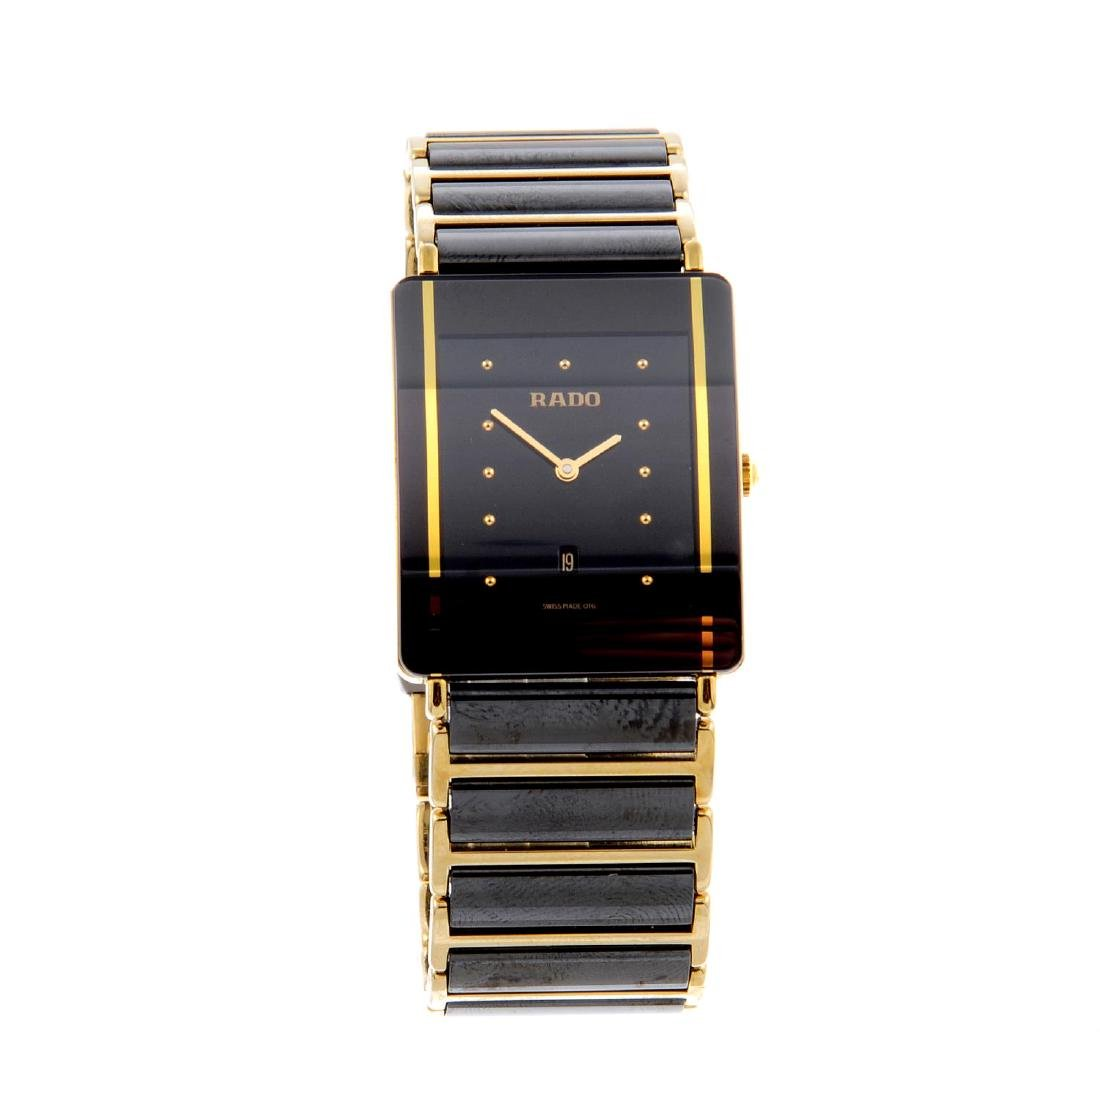 RADO - a gentleman's DiaStar bracelet watch. Gold